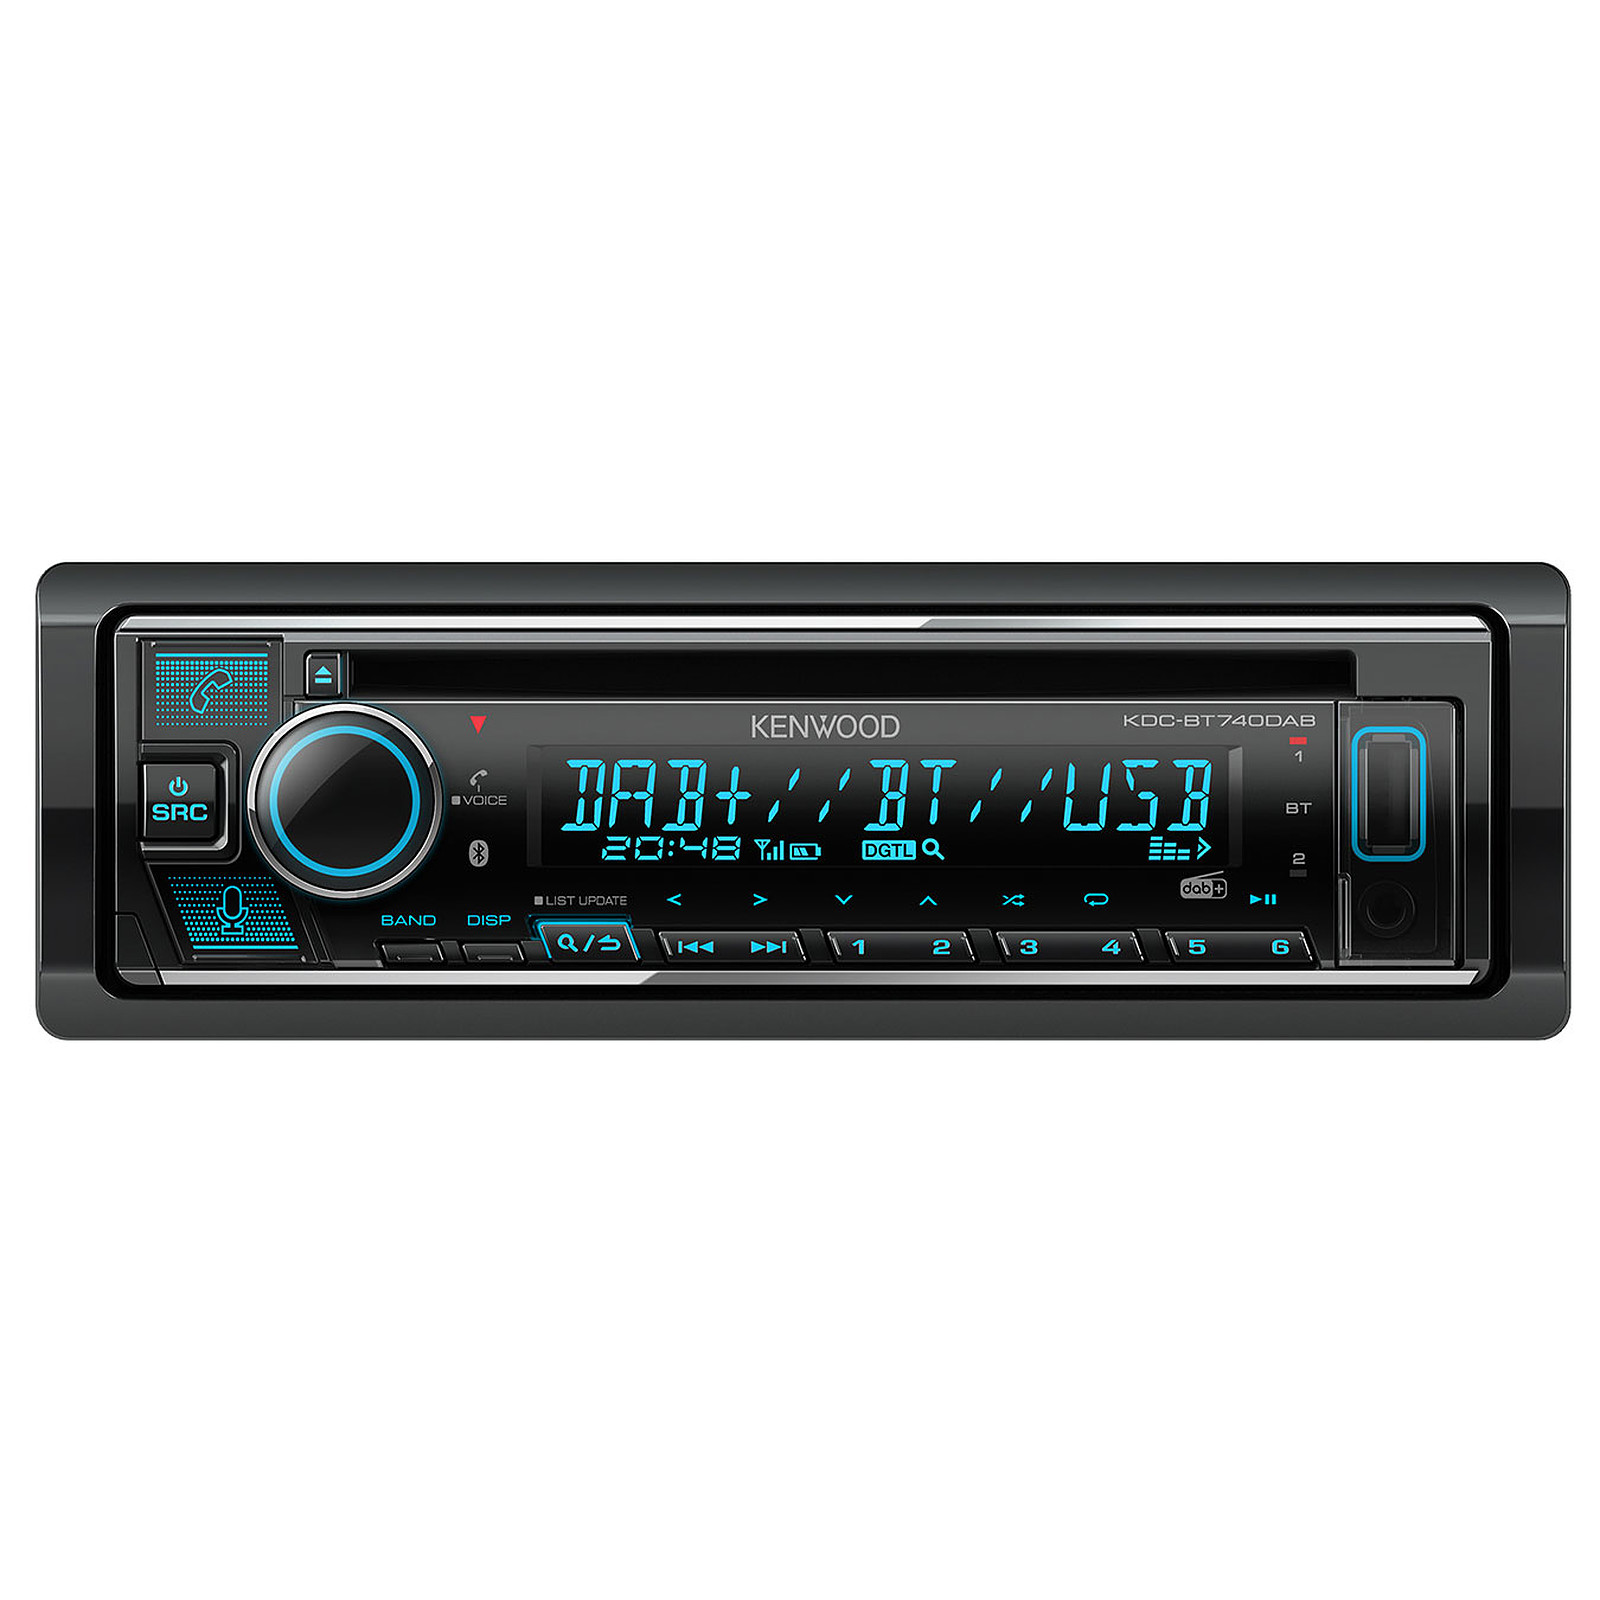 Kenwood KDC-BT740DAB